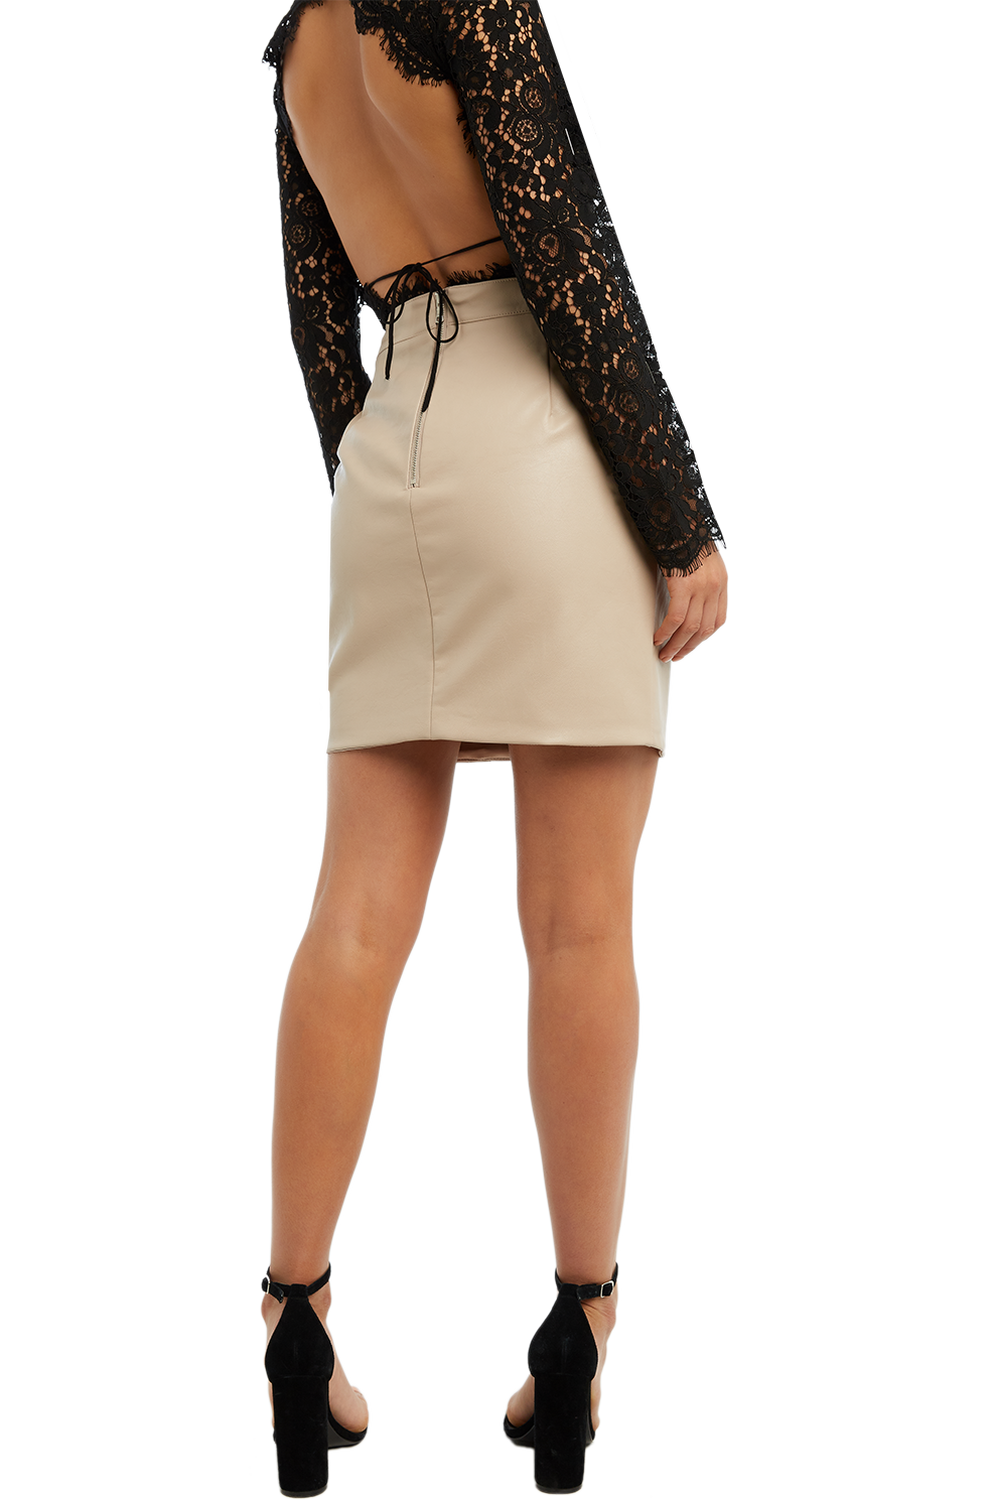 ALEXIS LEATHER SKIRT in colour RUGBY TAN